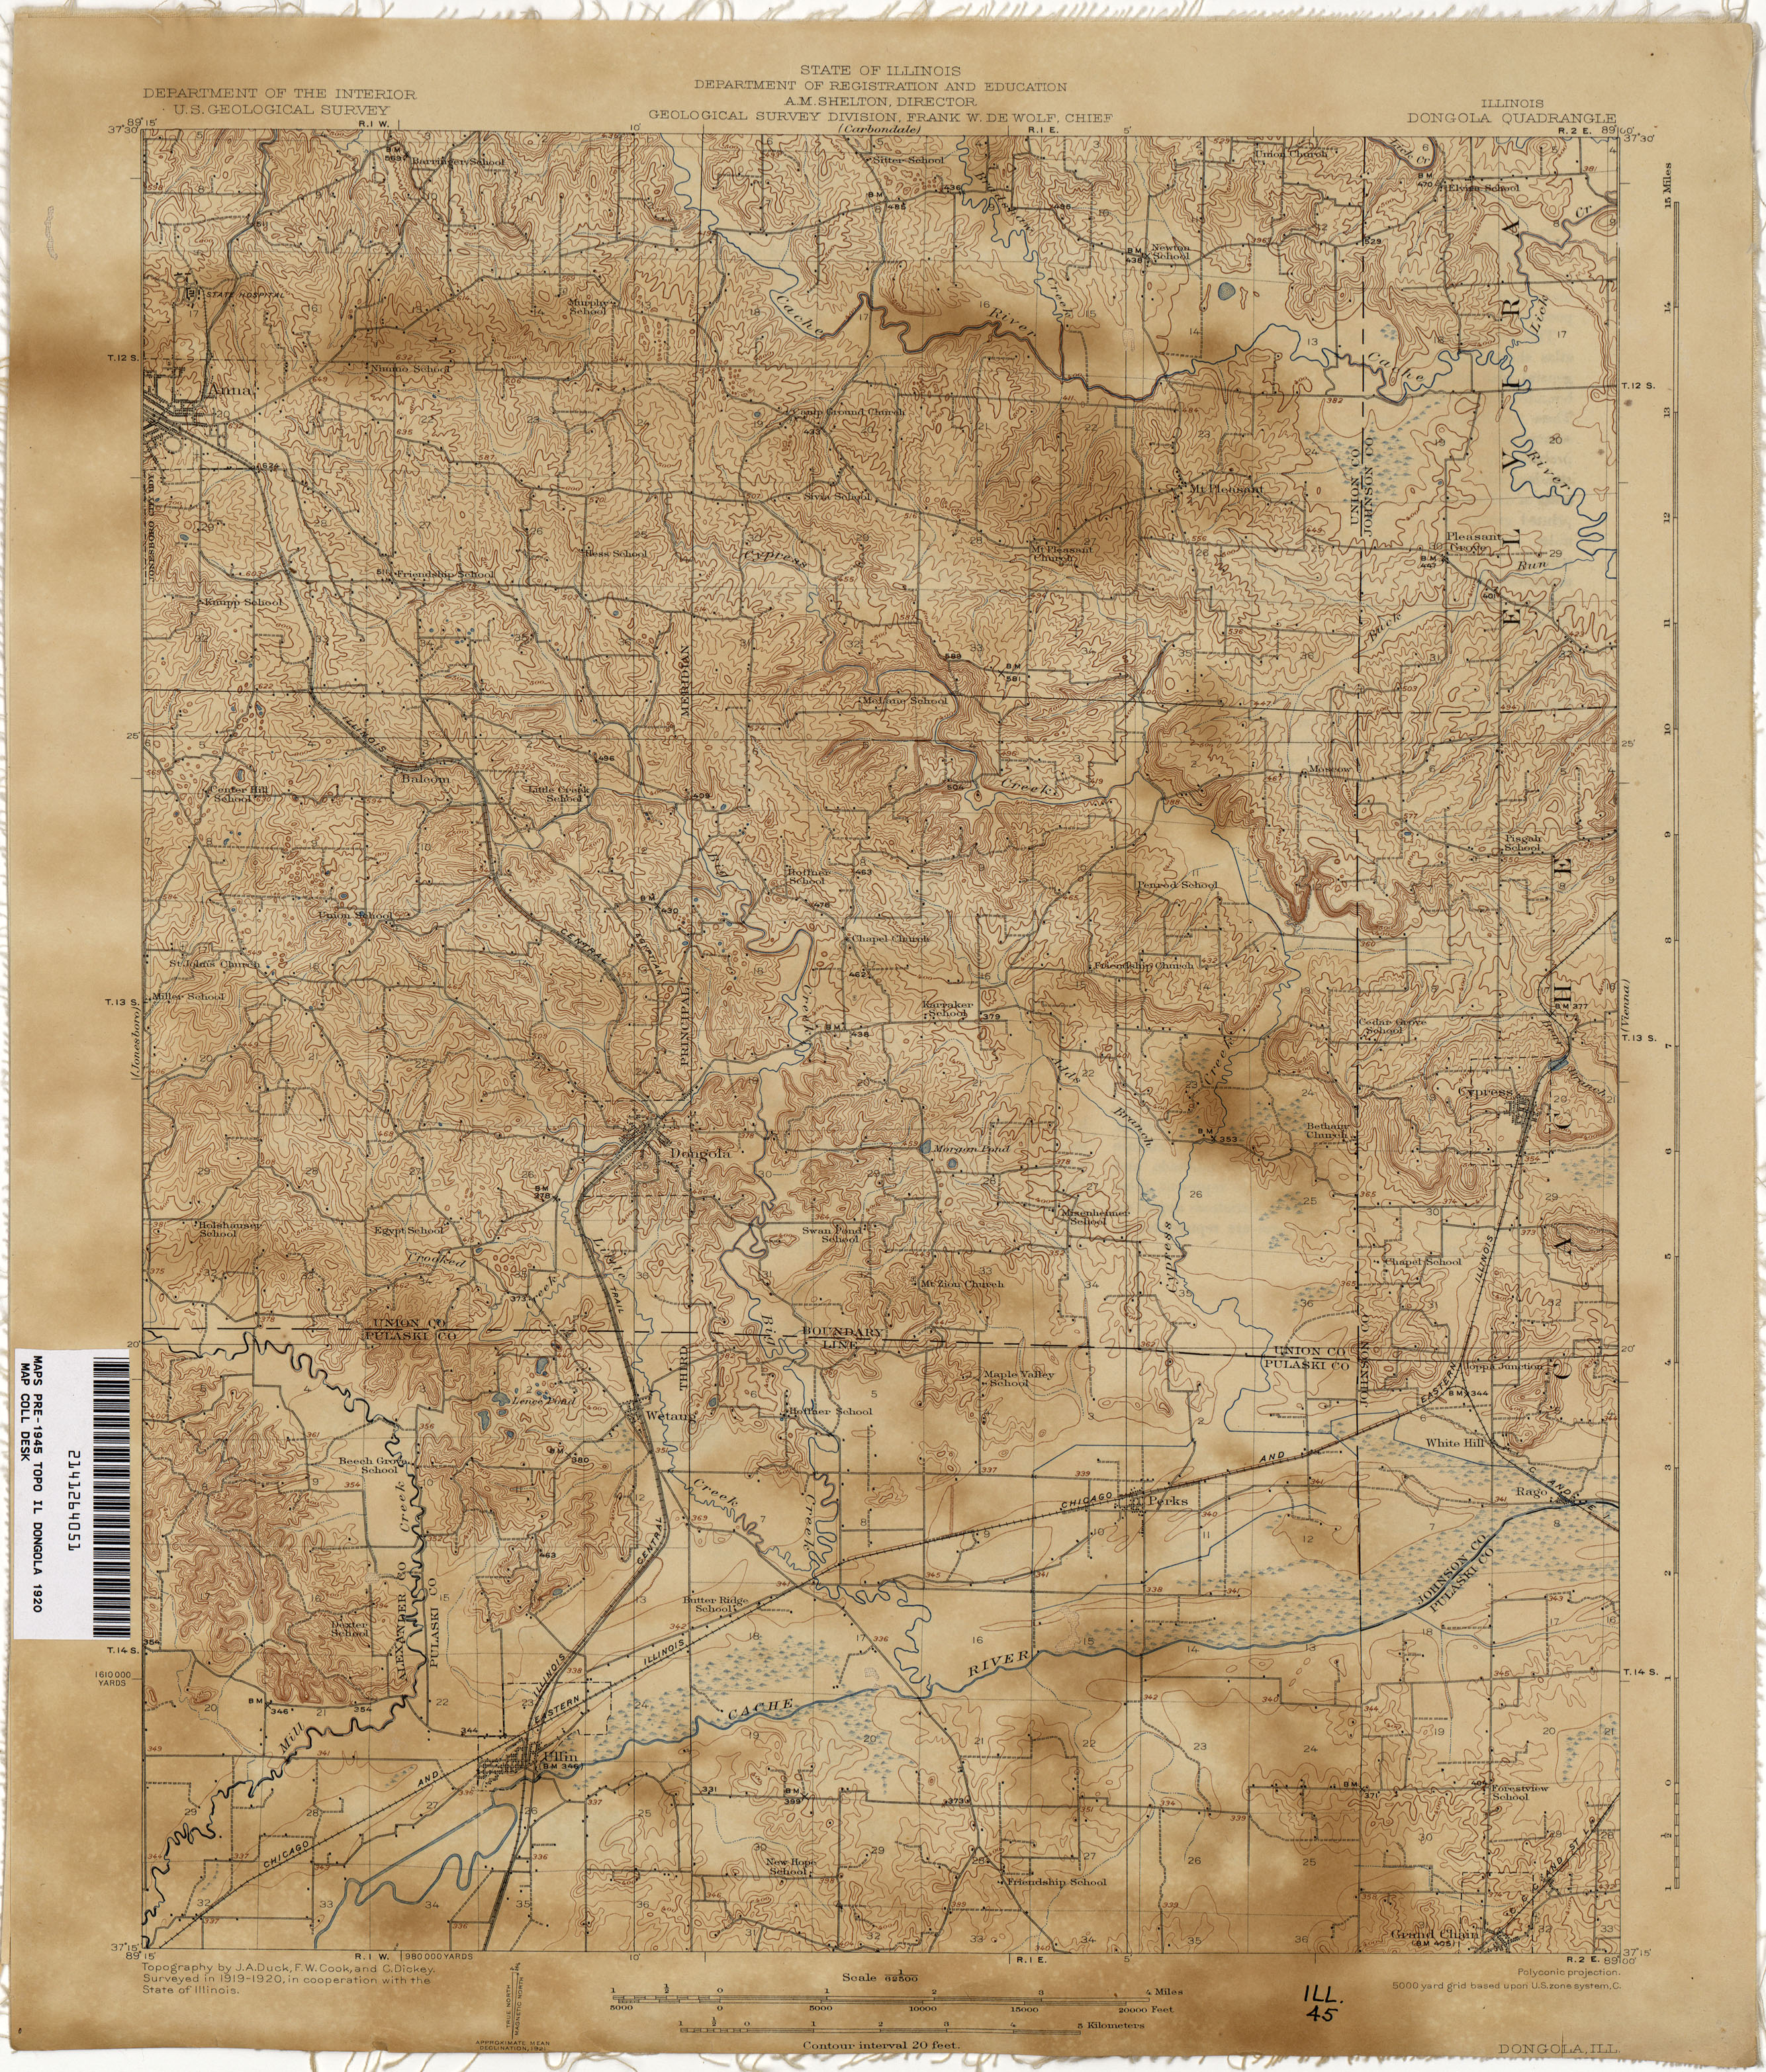 Illinois Historical Topographic Maps - Perry-Castañeda Map ... on map of elmwood, map of flossmoor, map of dalzell, map of wadi halfa, map of granite city, map of zinder, map of rumbek, map of farmer city, map of south darfur, map of kenema, map of faiyum, map of elburn, map of zeila, map of brownstown, map of kom ombo, map of arthur, map of dallas city, map of future city, map of giant city state park, map of rafah,